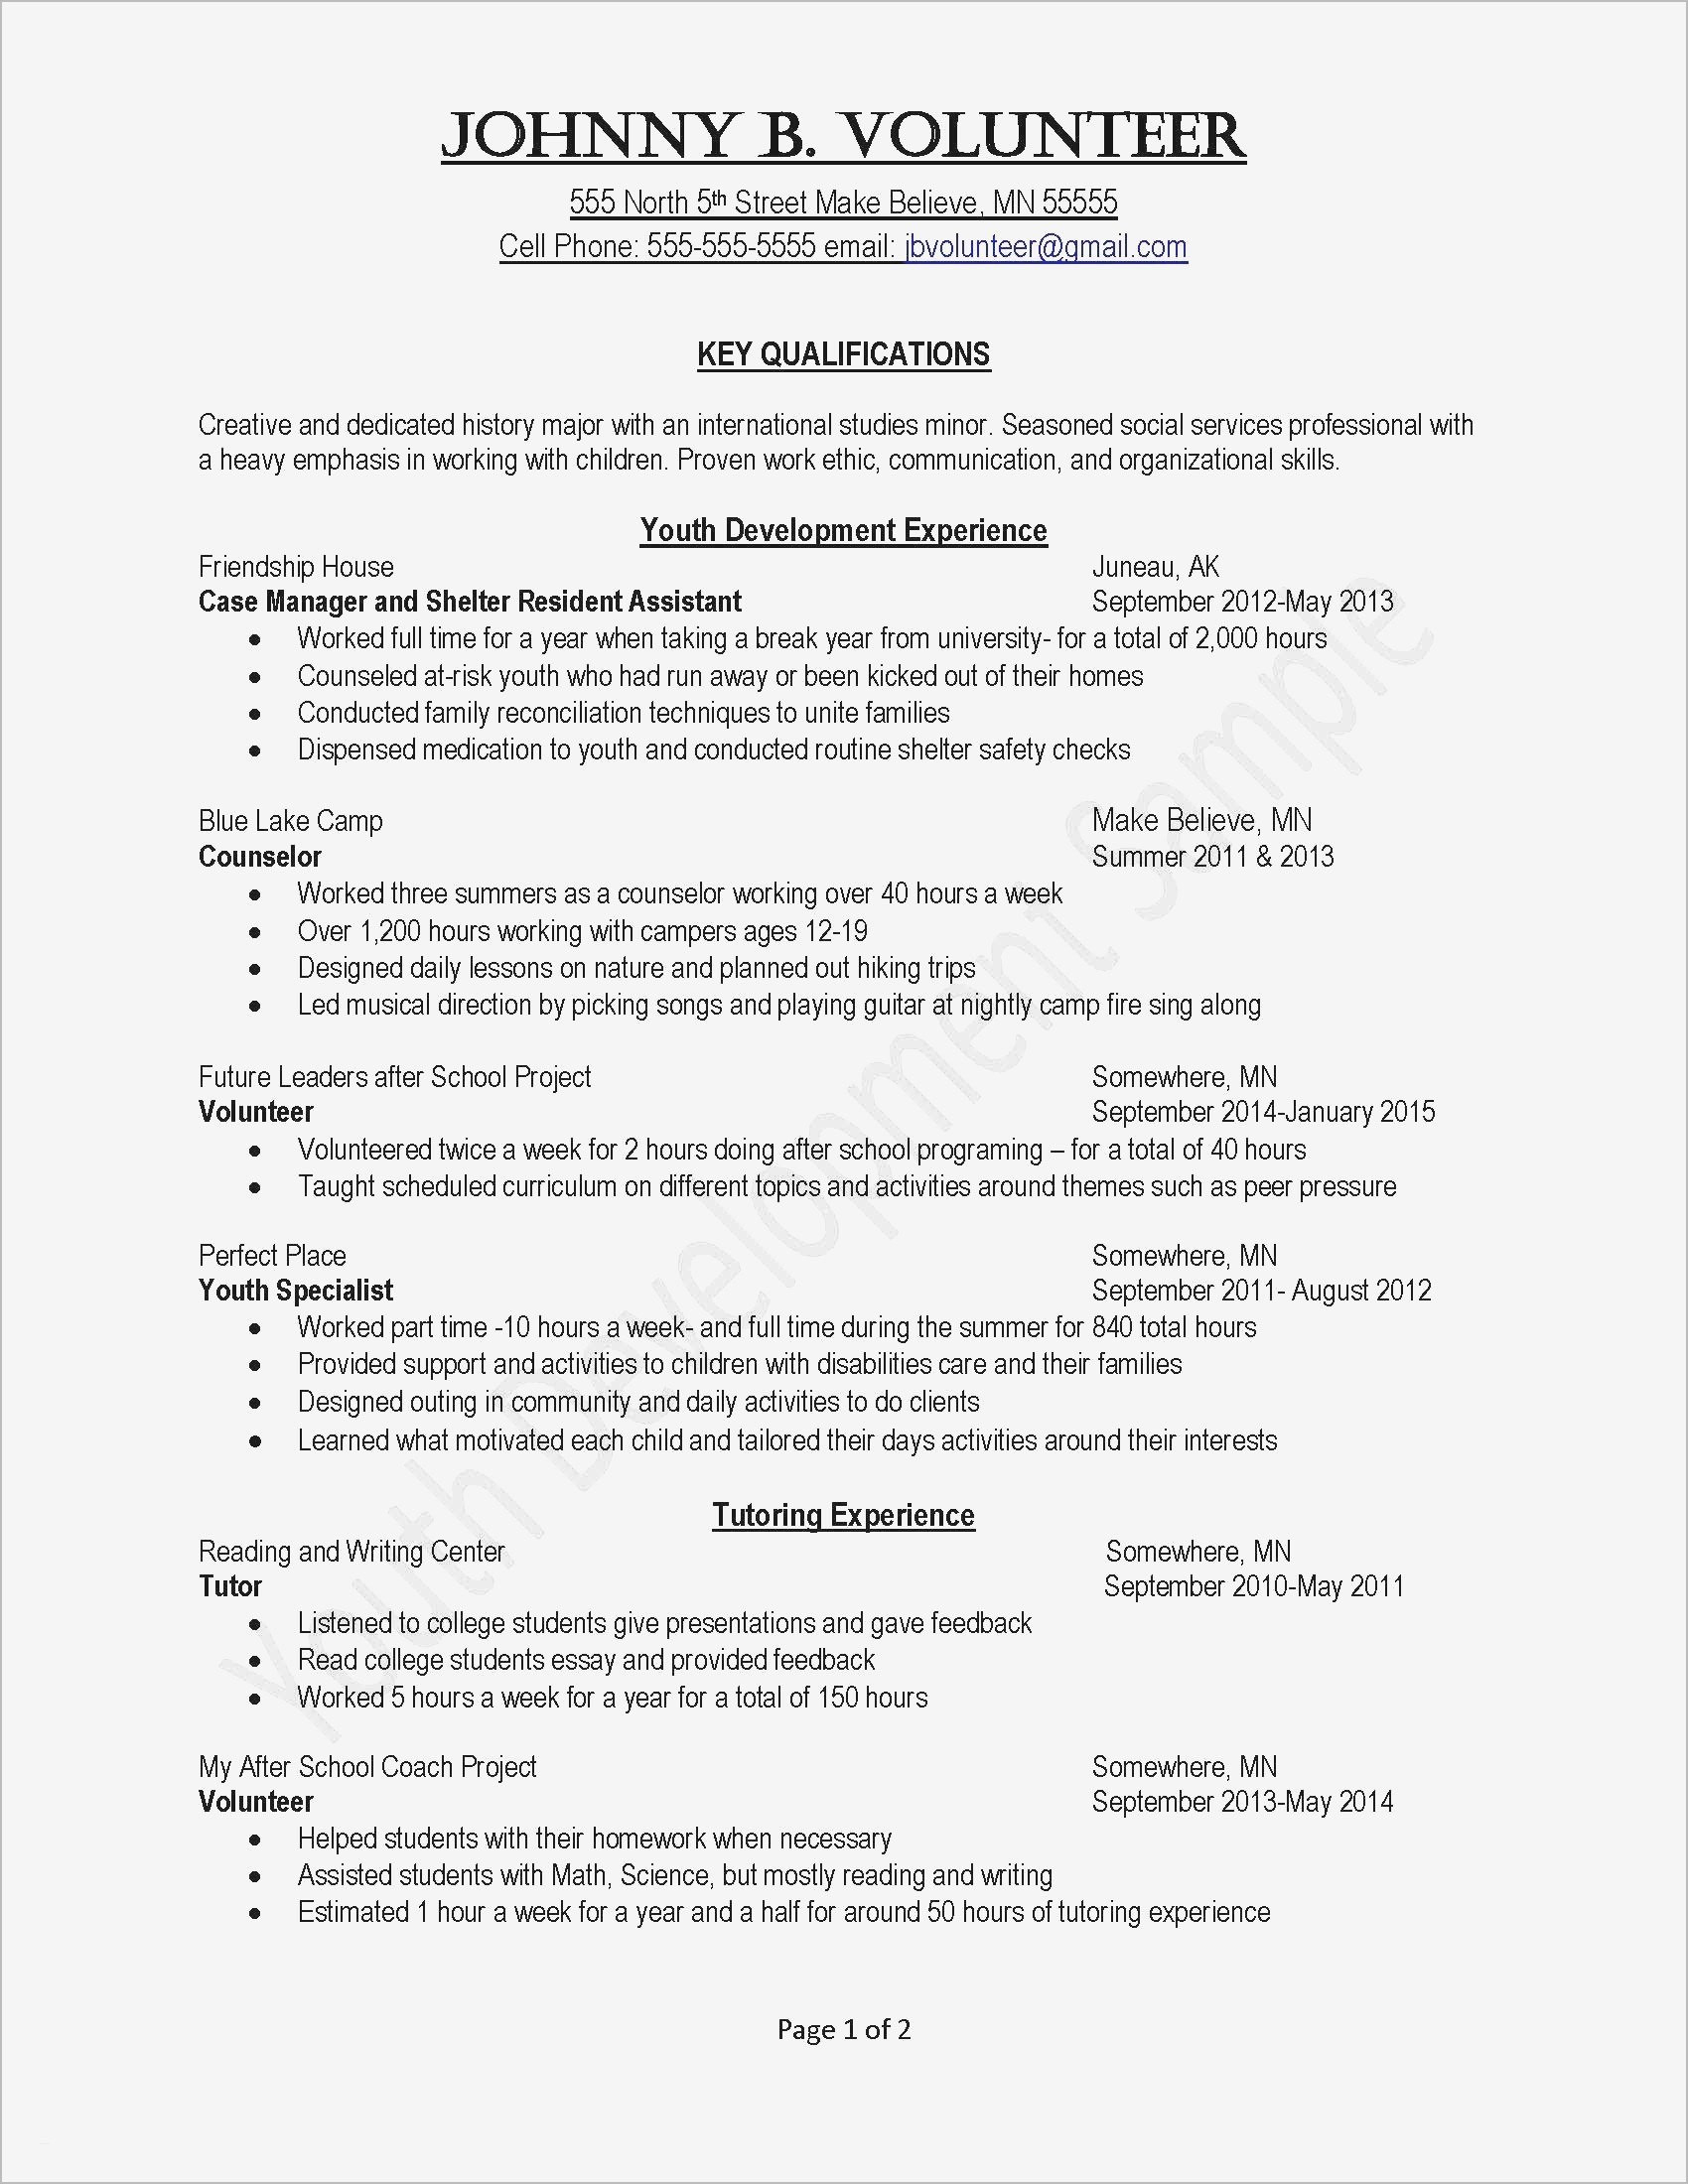 Cover Letter for Essay Template - Free Templates for Resumes and Cover Letters Best Job Fer Letter